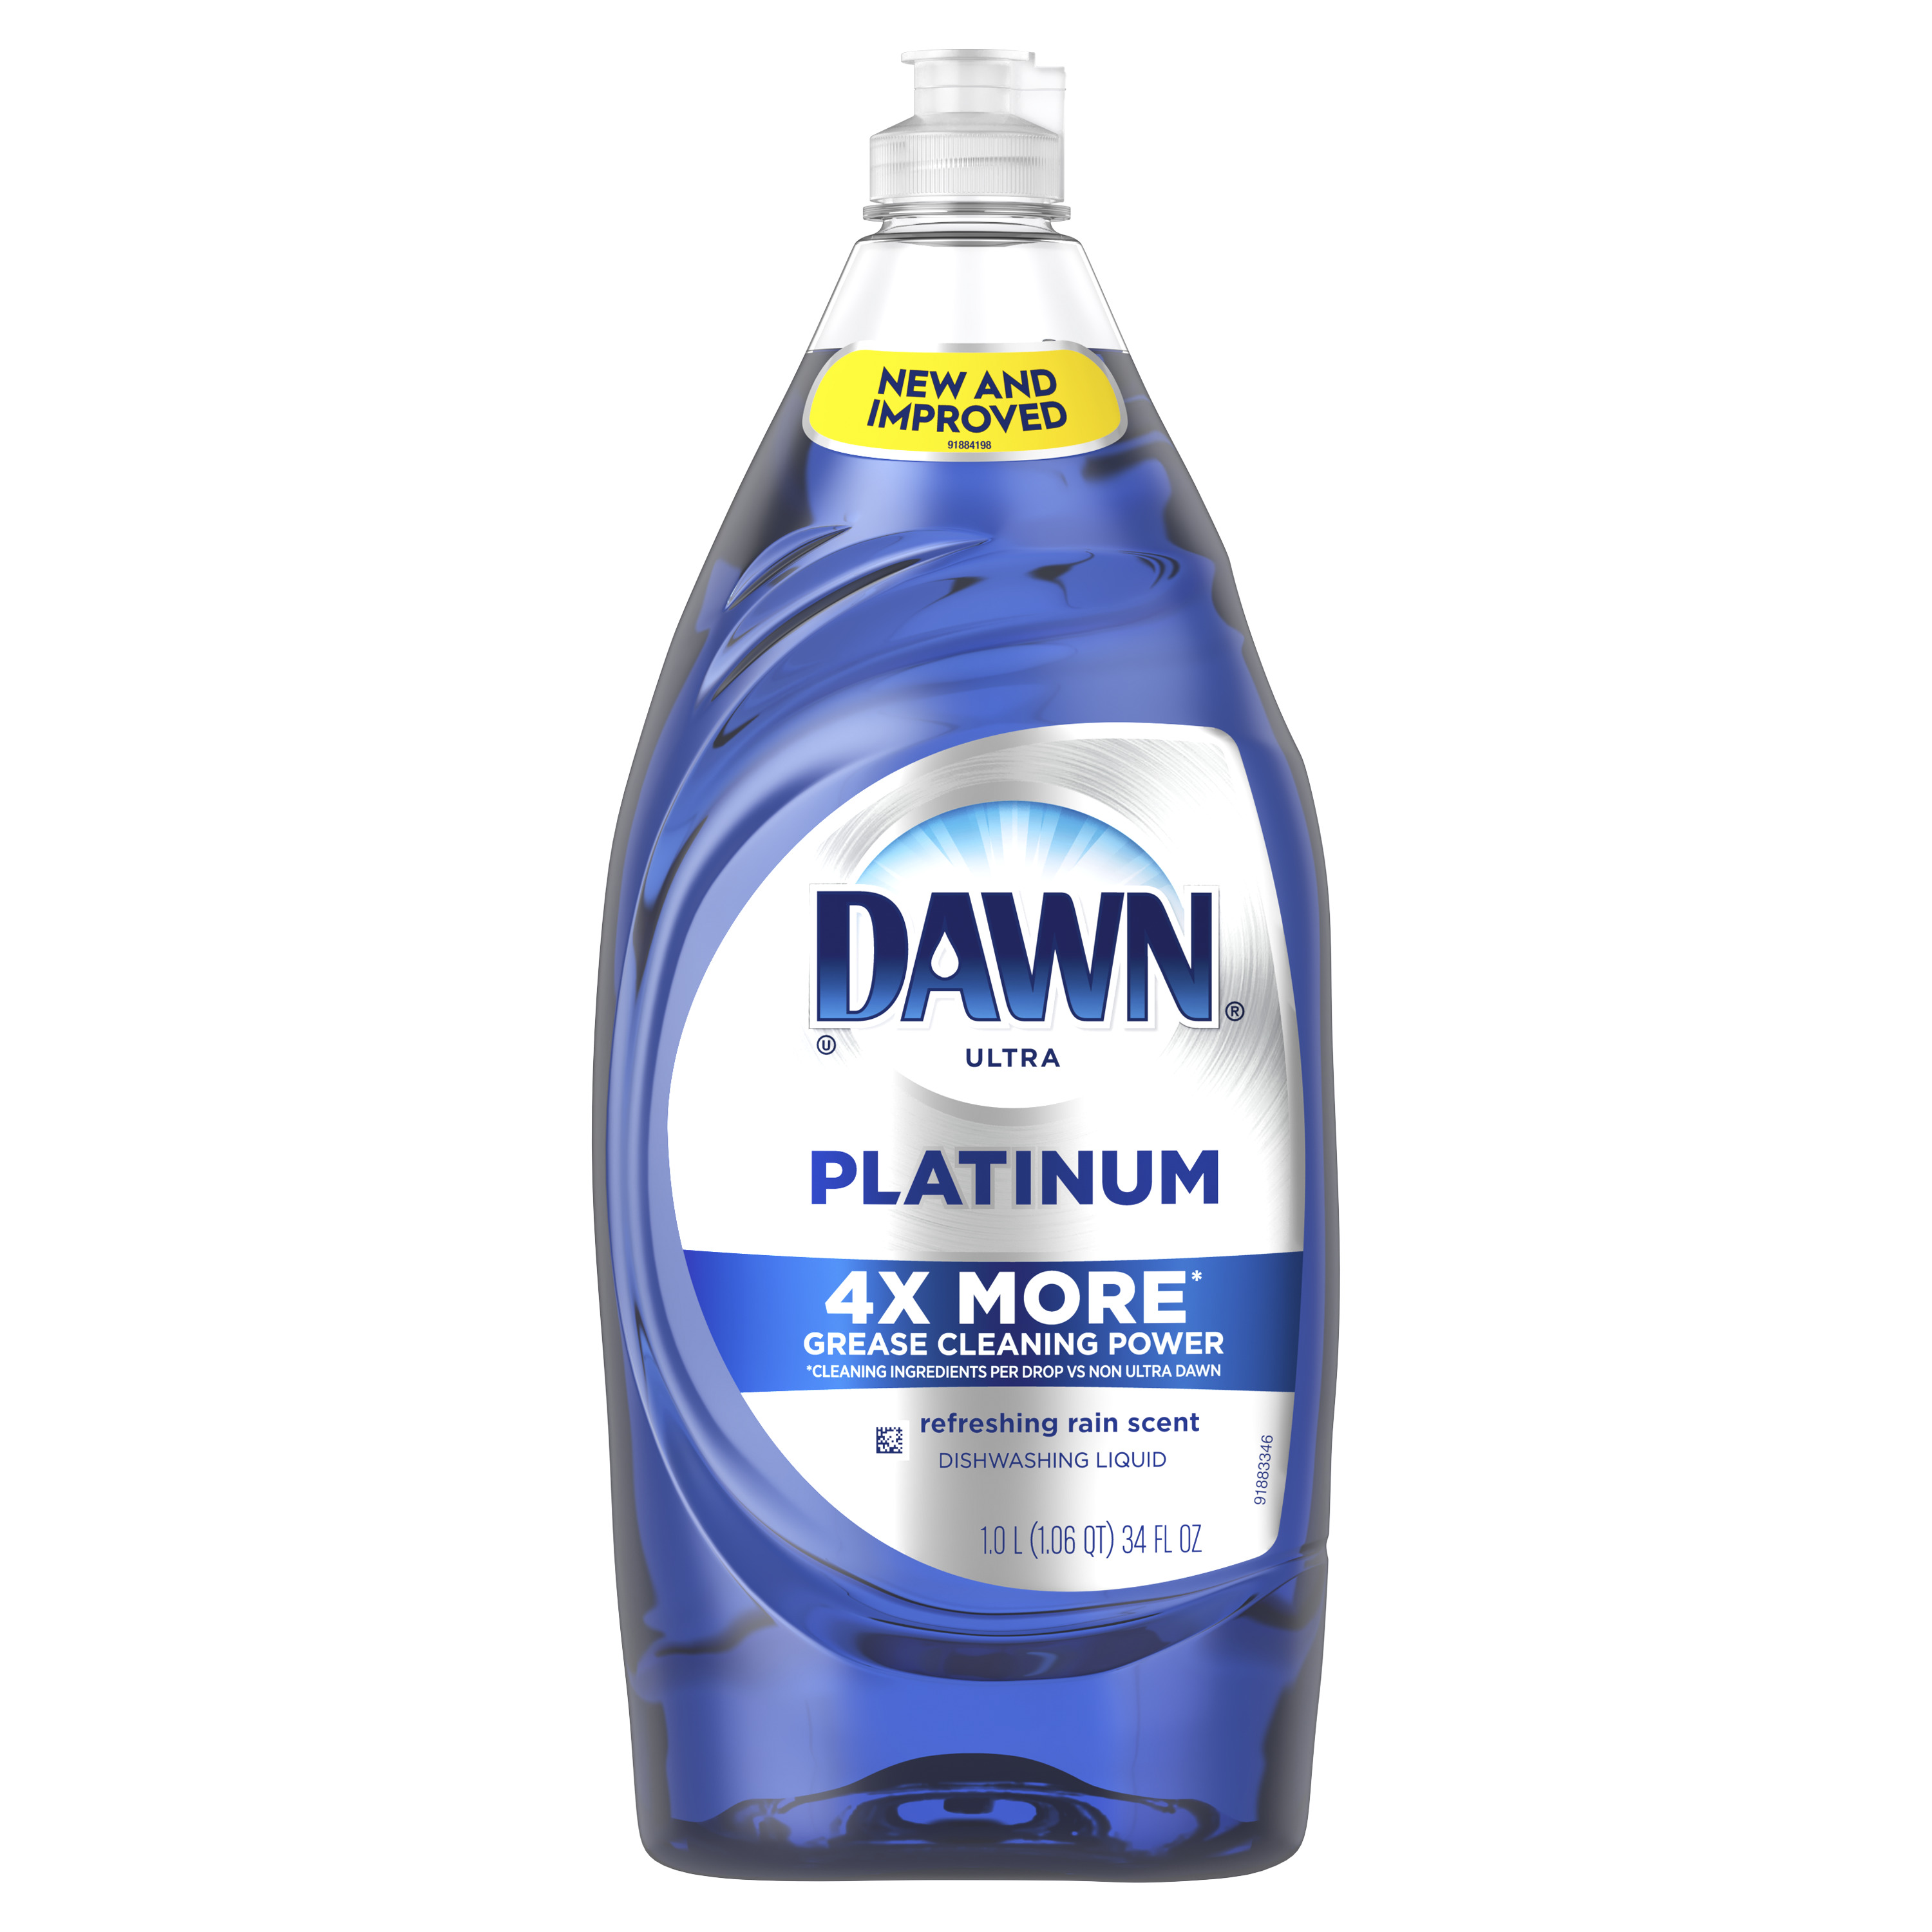 Dawn Platinum Dishwashing Liquid Dish Soap, Refreshing Rain Scent, 34 fl oz